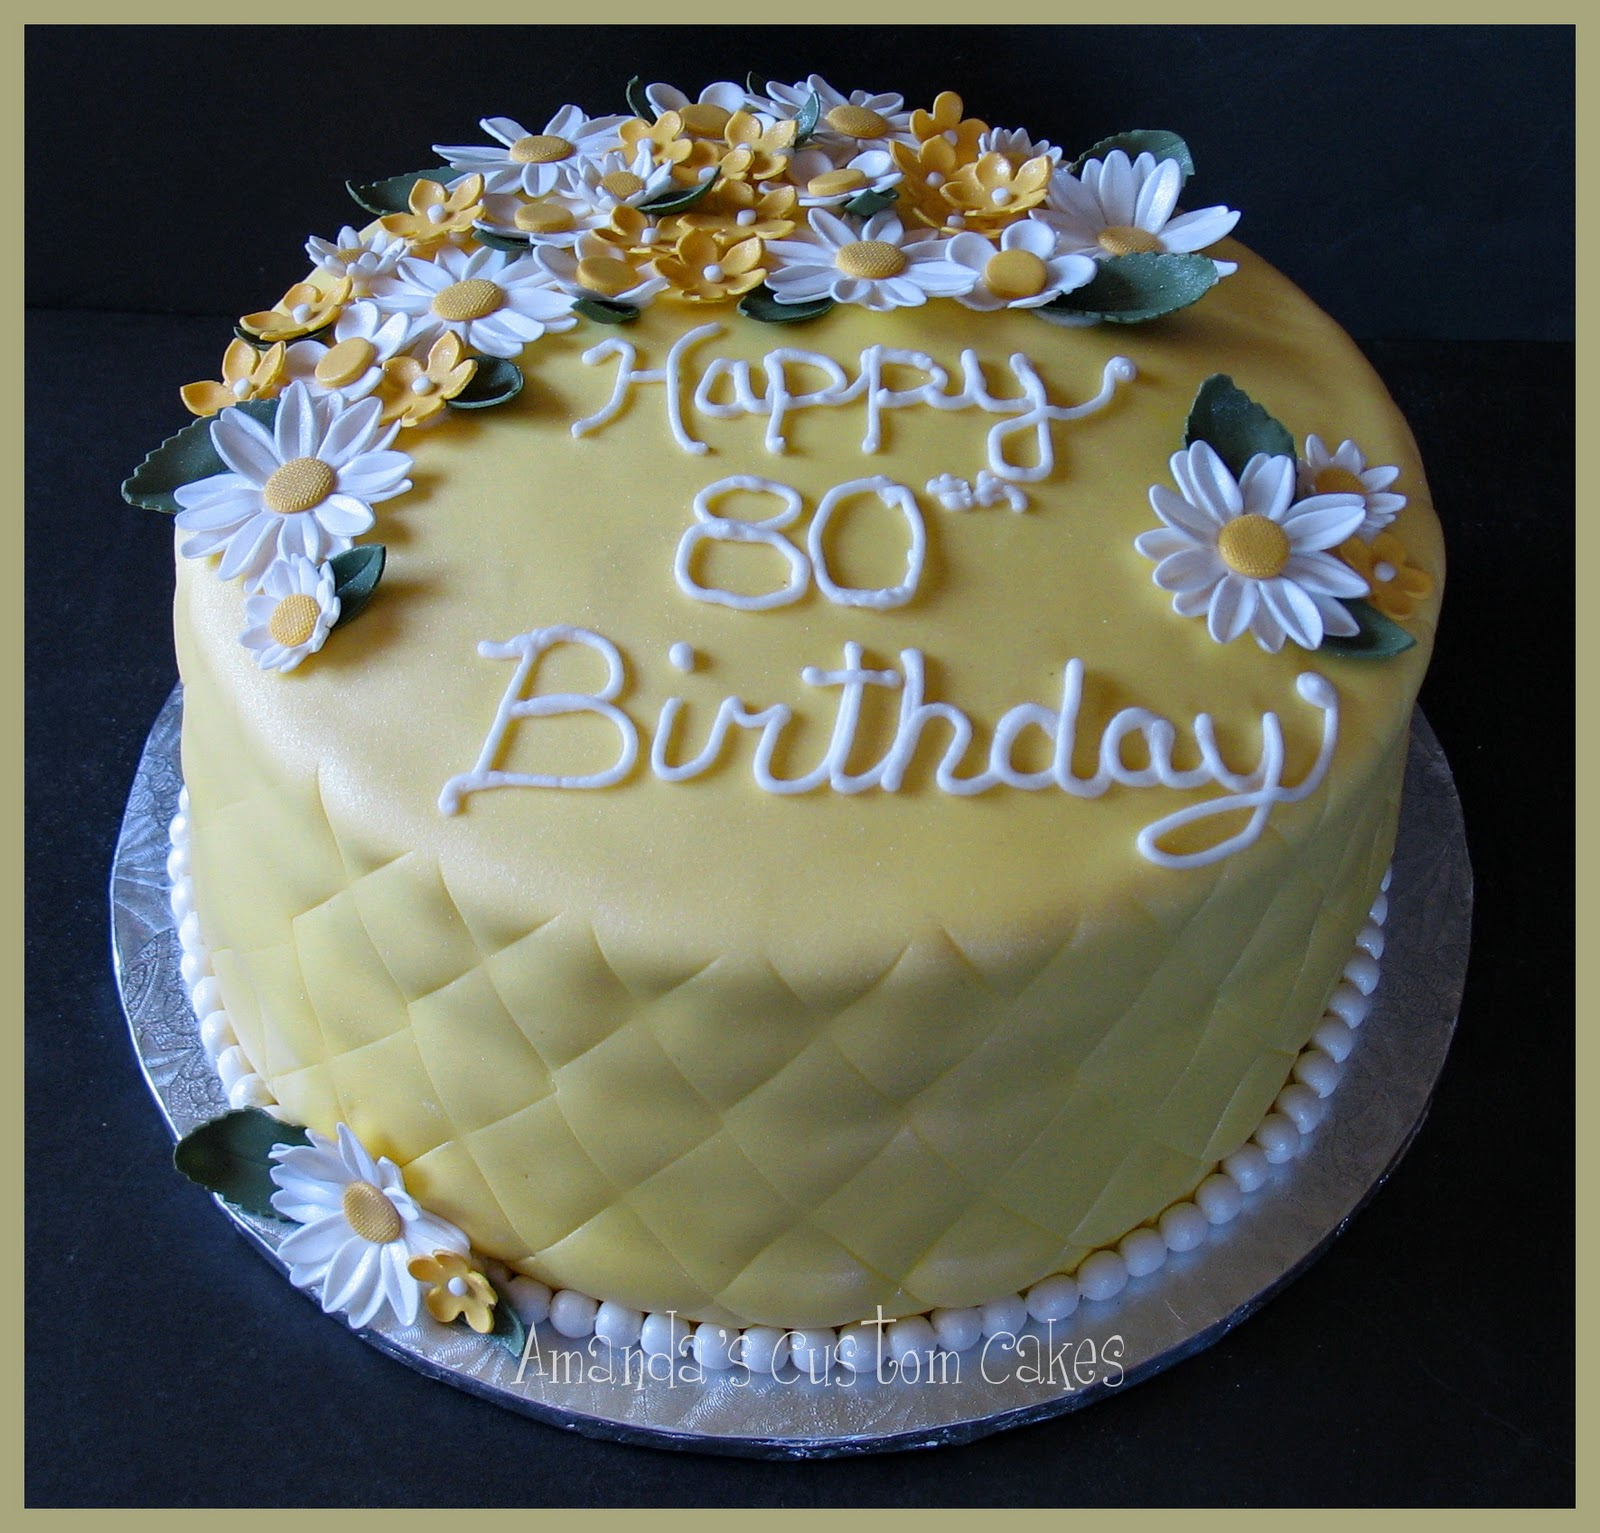 Amanda 39 s custom cakes yellow 80th birthday cake for Gardening 80th birthday cake